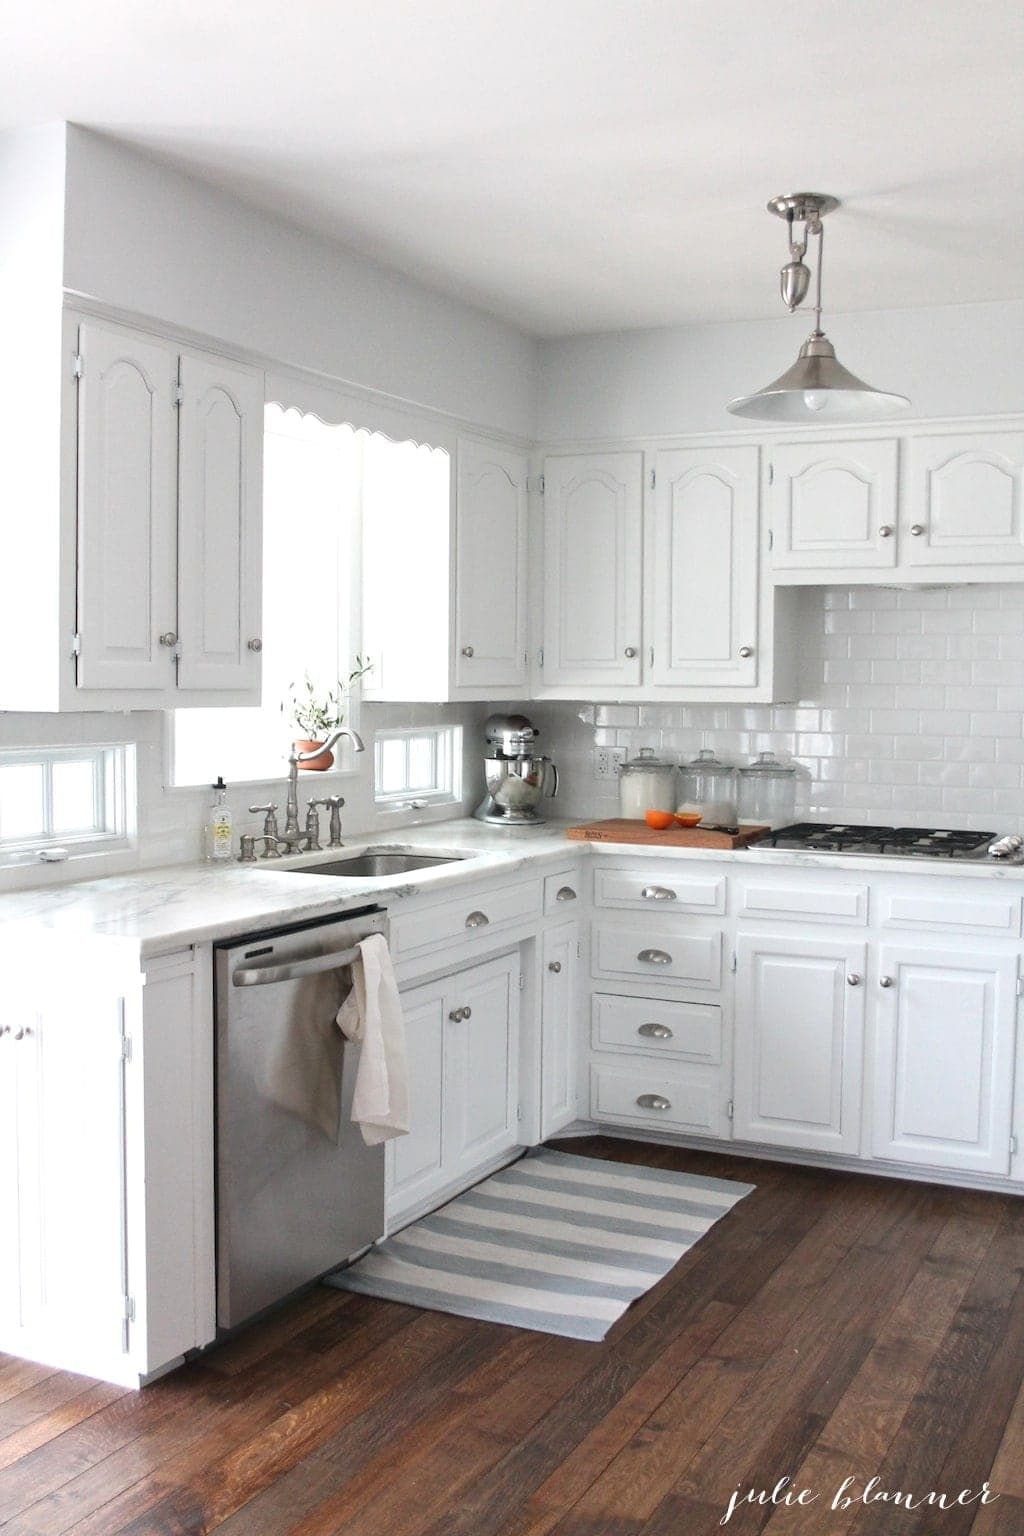 The Risks & Benefits of Marble Countertops